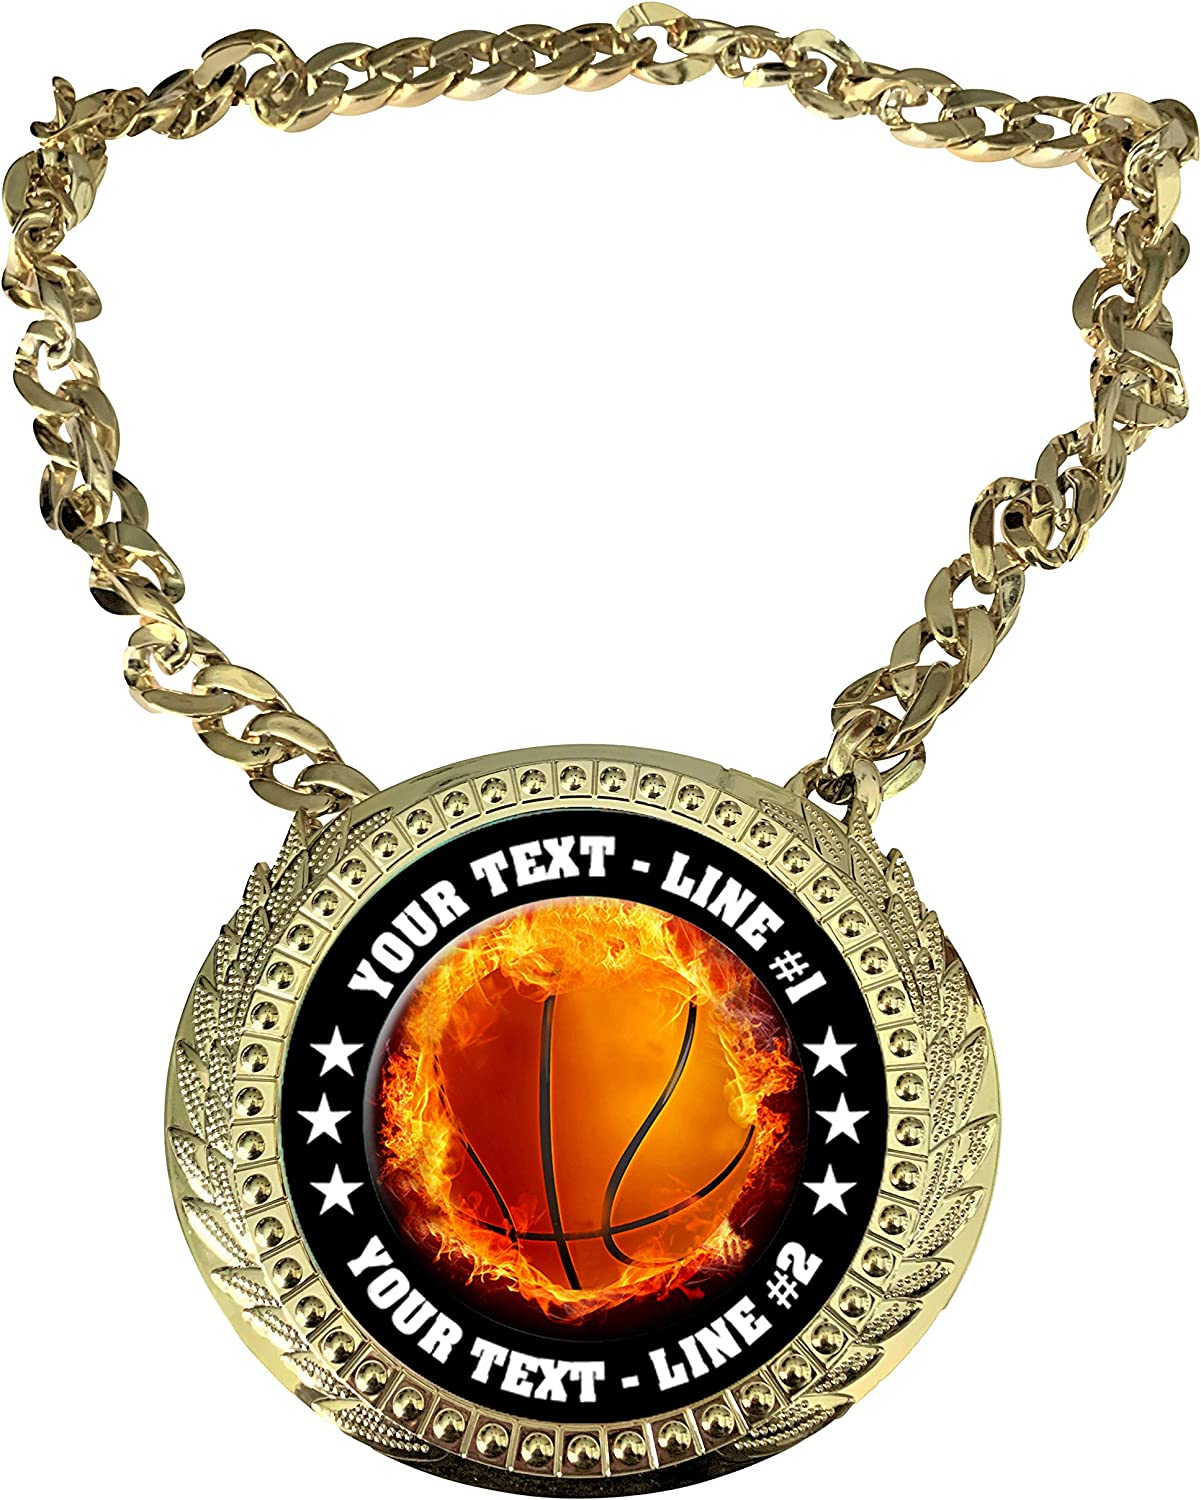 EMFCL803 Express Medals Custom Flame Basketball Champ Chain Trophy with 2 Lines of Personalized Text on a Large Rigid Plastic Award Medal and 34 Inch Long Gold Color Neck Chain